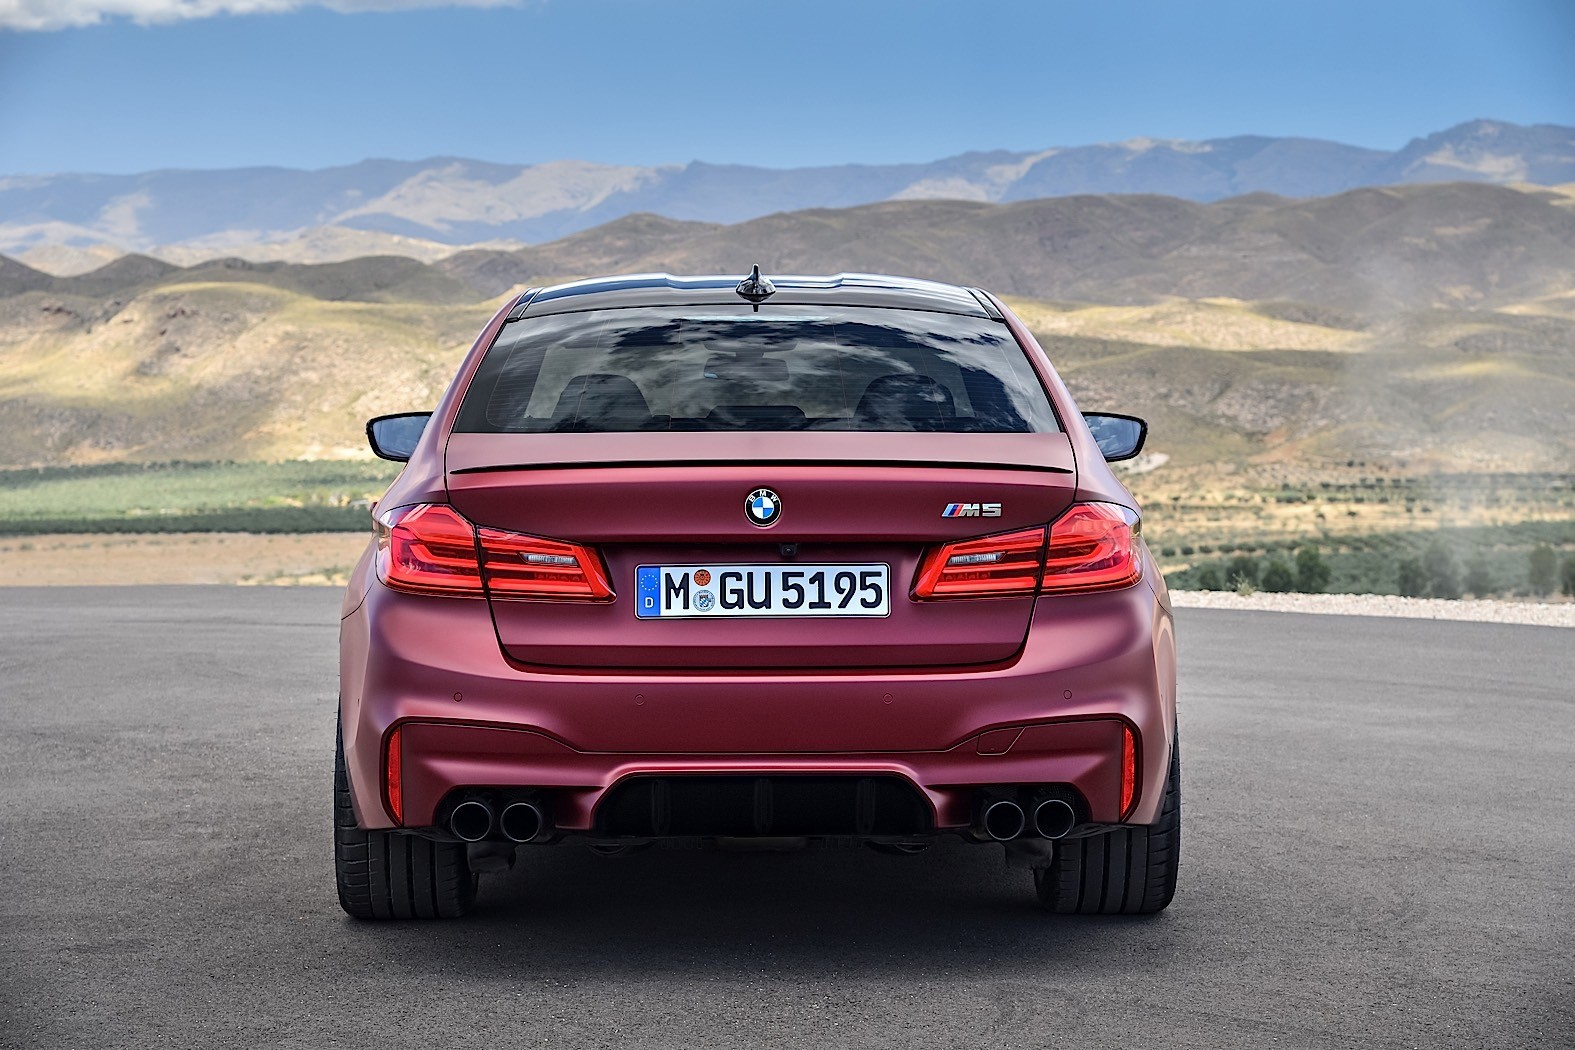 2018 bmw m5 high speed drifting is timo glock 39 s smoke show autoevolution. Black Bedroom Furniture Sets. Home Design Ideas